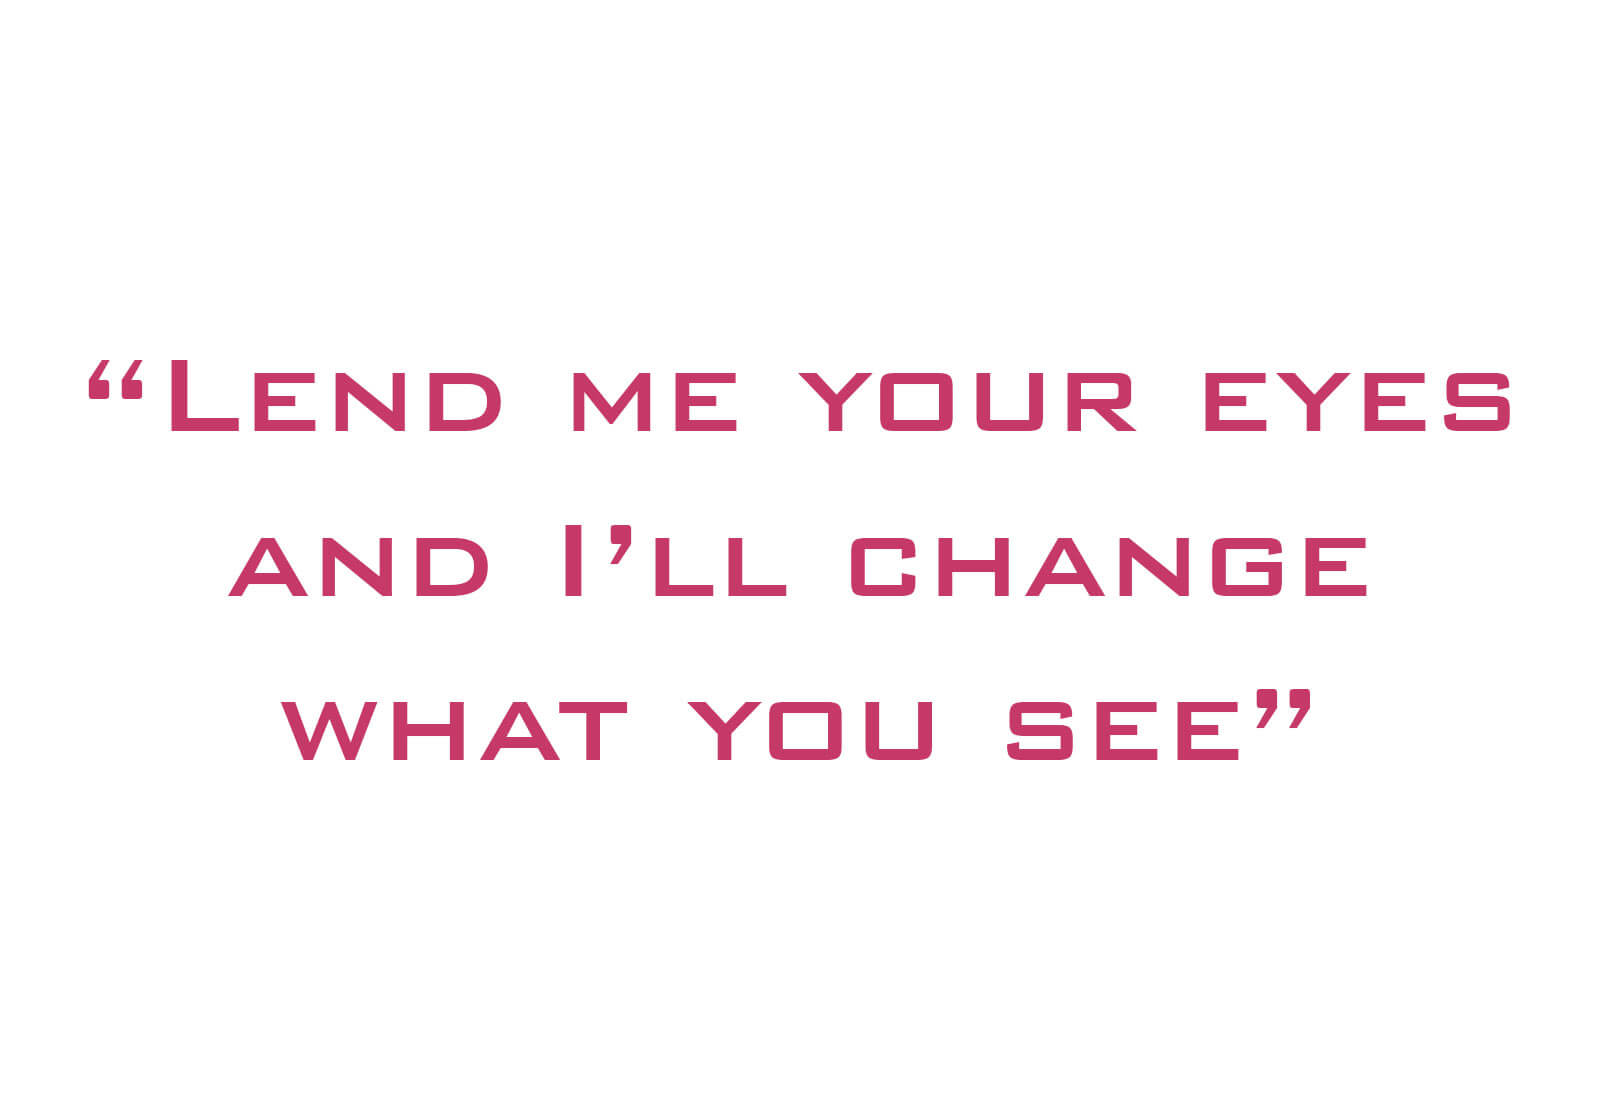 Lend me your eyes and I'll change what you see